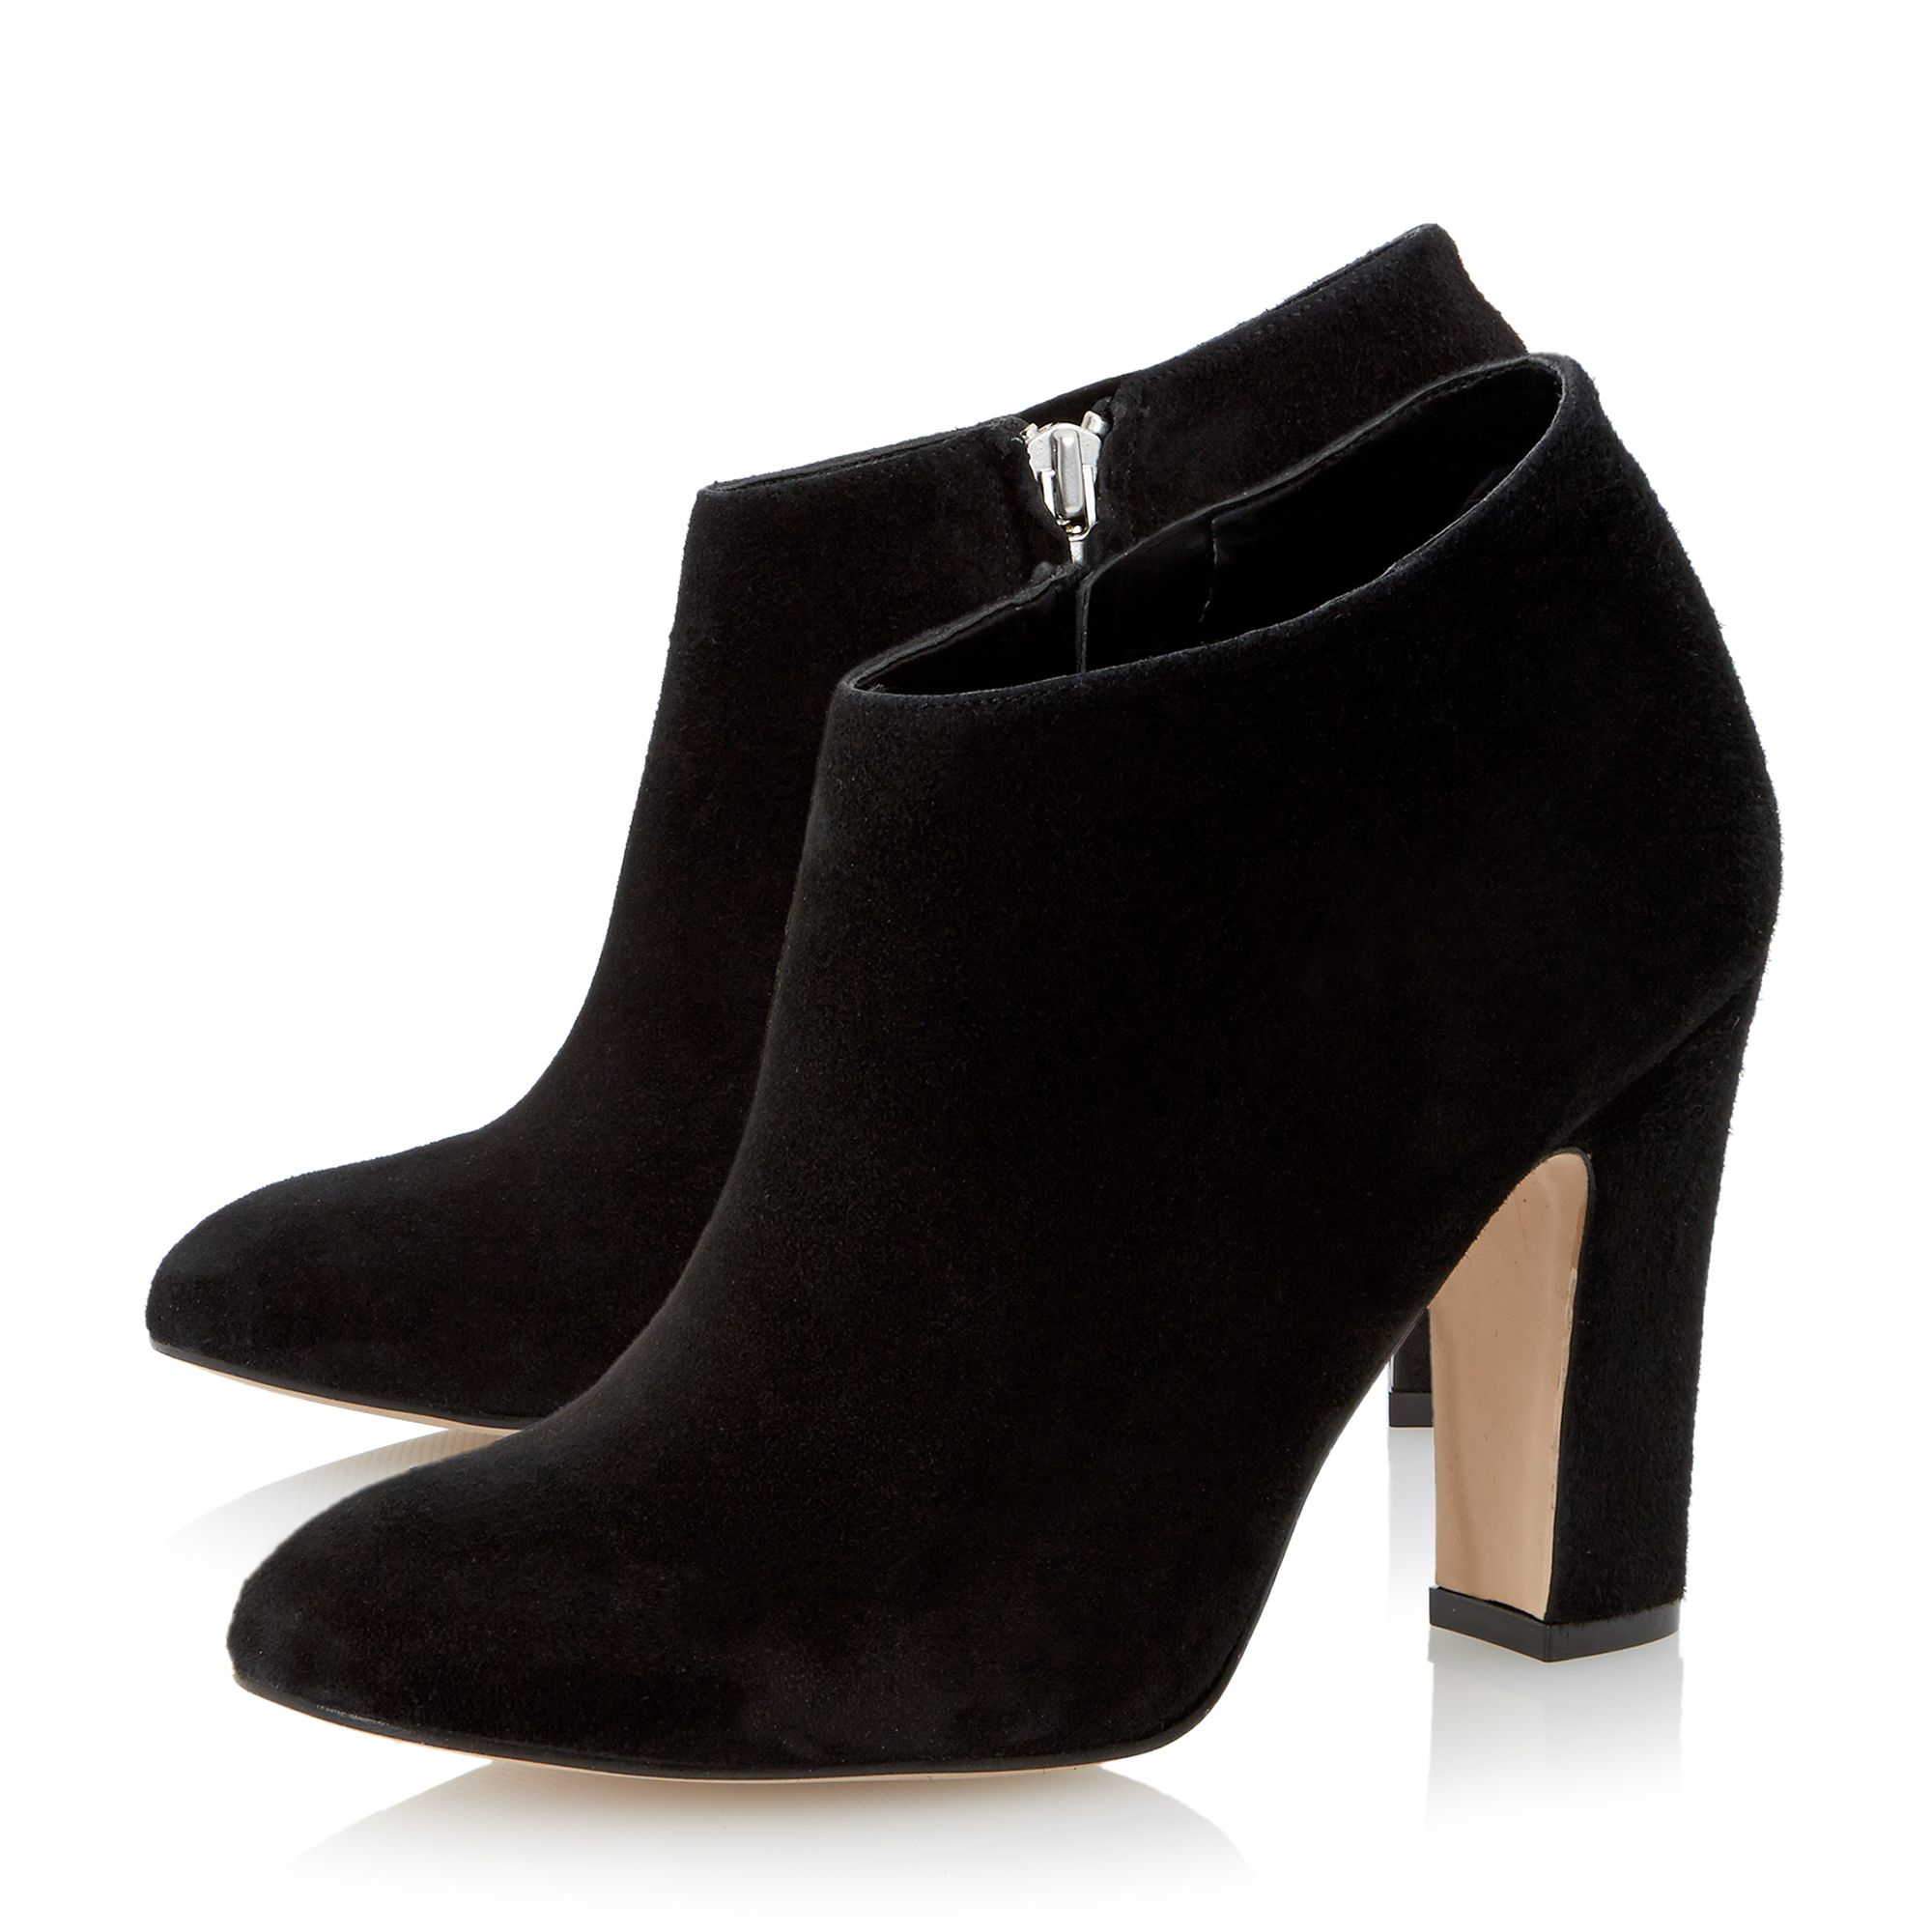 Dune Olyvia Dressy Heeled Ankle Boot in Black | Lyst